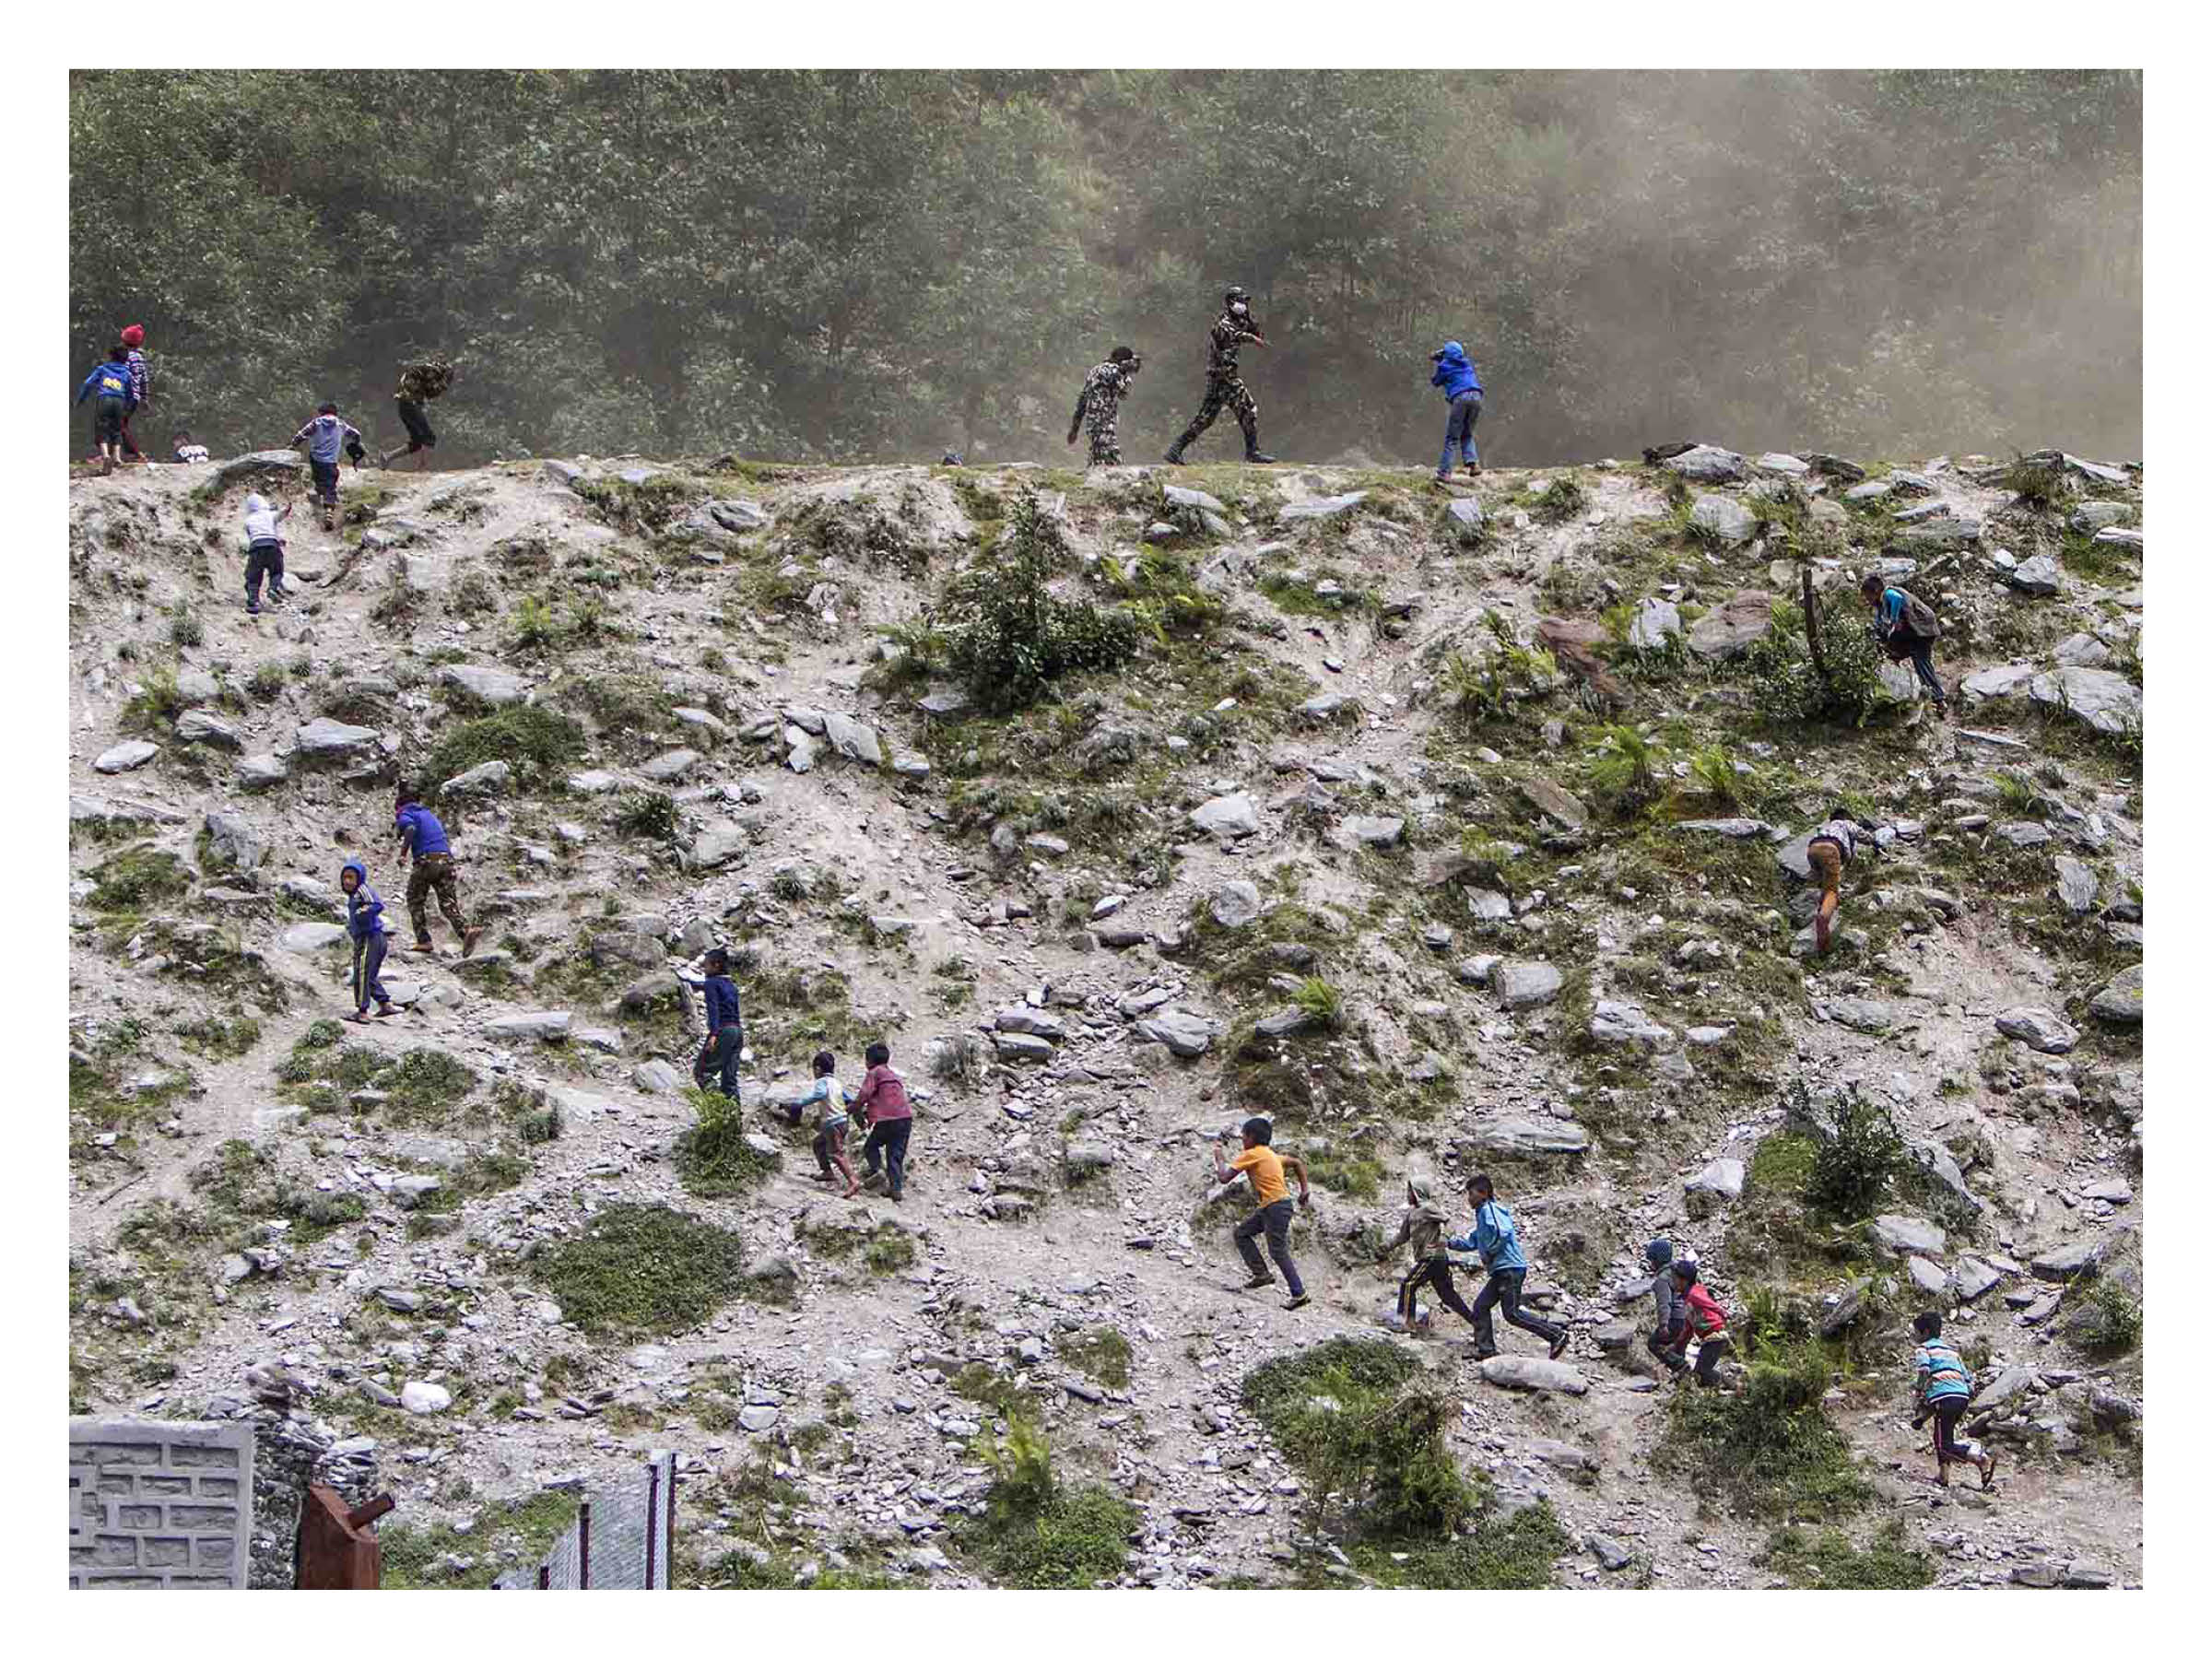 Nepal Earthquake -  Children run to greet a UN helicopter delivering humanitarian aid, the first of many to reach the remote mountain village of Barpak, the known epicentre of the 7.8M earthquake.